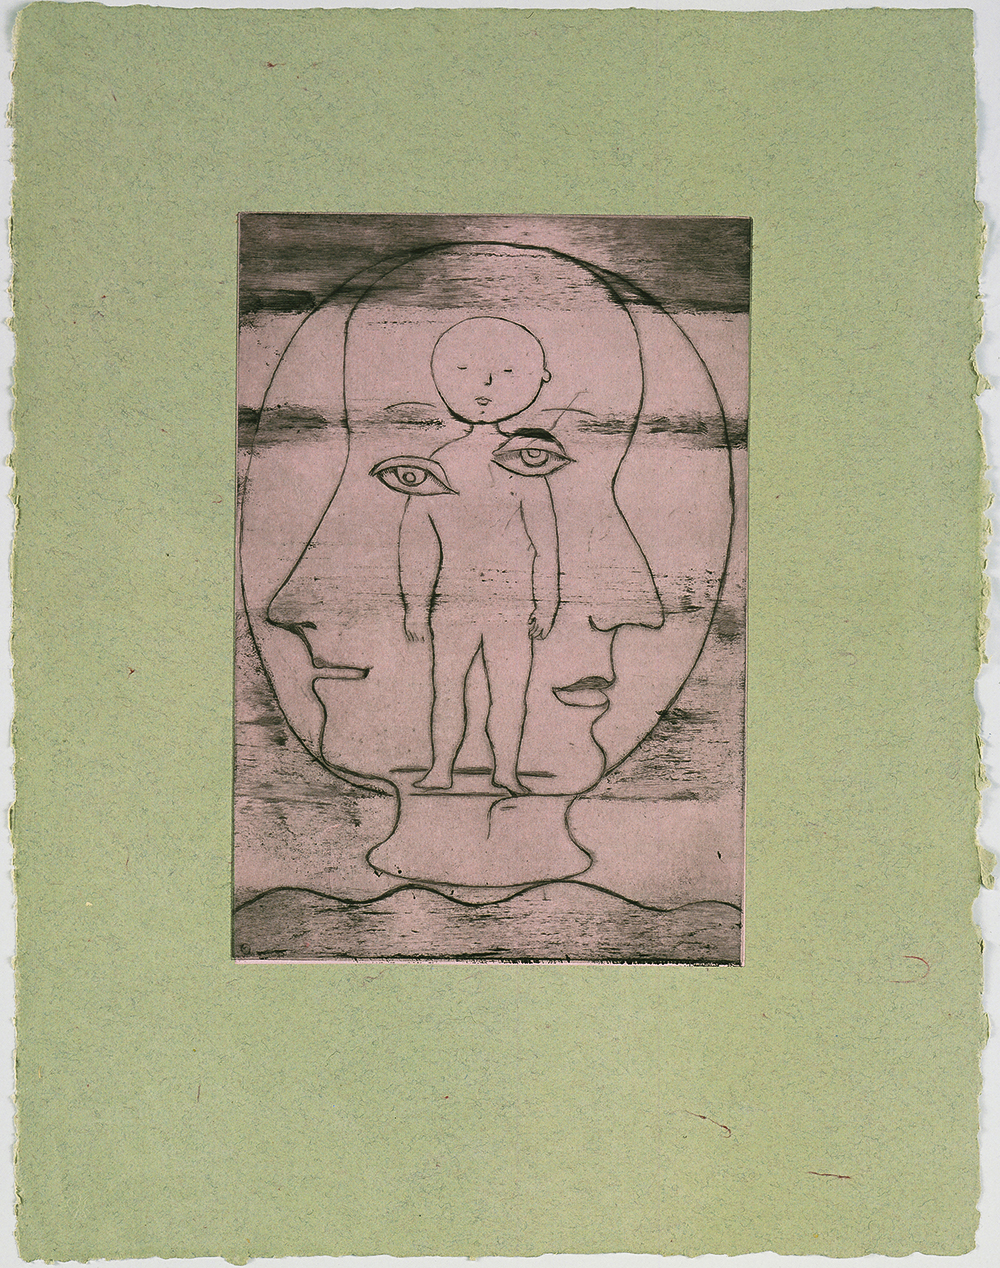 Louise Bourgeois (1911–2010). Self Portrait. 1990. Drypoint. Sheet: 26 3/8 x 20 1/16″ (67 x 51 cm). The Museum of Modern Art, New York. Gift of the artist. © 2017 The Easton Foundation/Licensed by VAGA, NY.